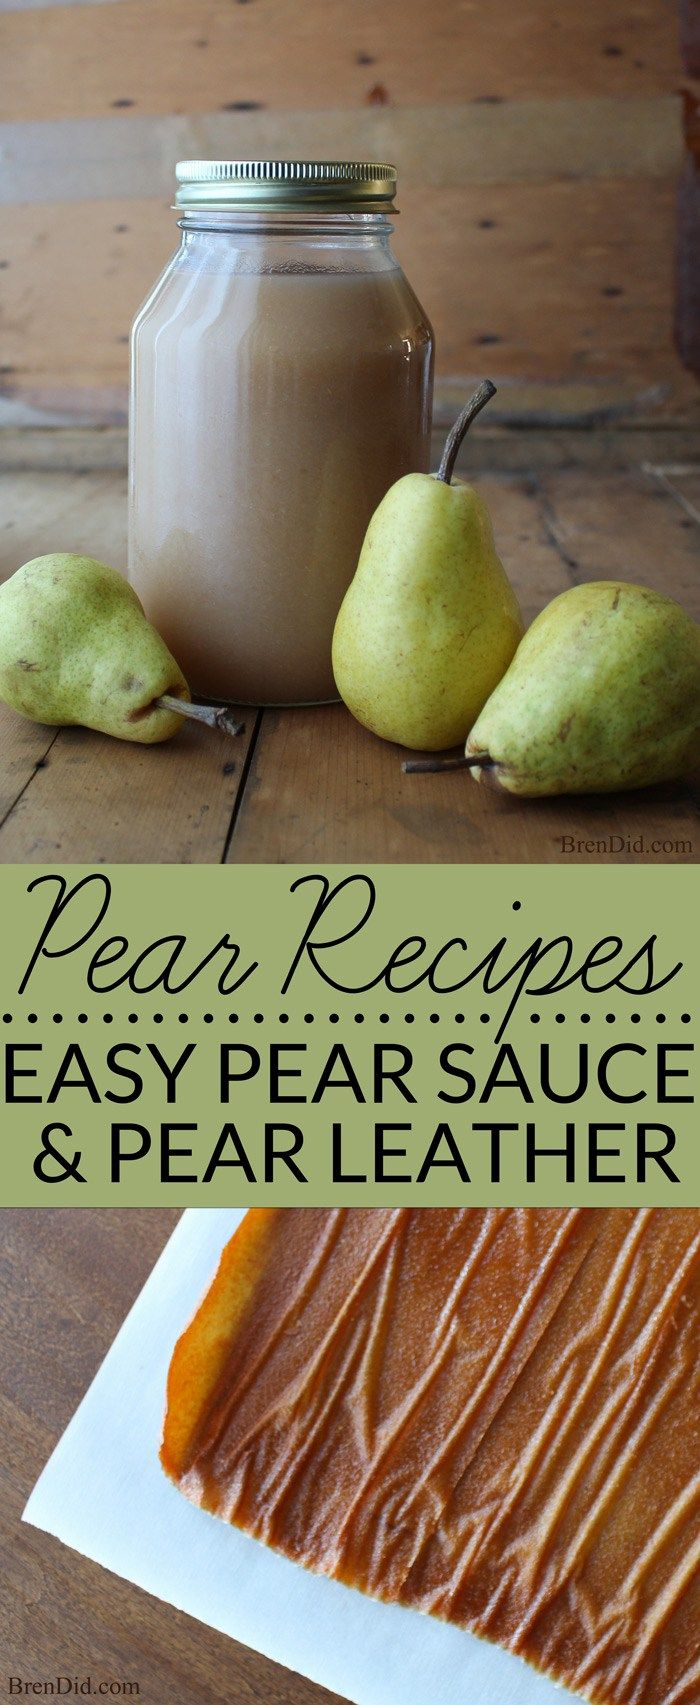 Pear sauce and pear leather are easy pear recipes to make with fresh pears. Pear sauce freezes and cans well. Pear leather is a great sugar free snack. They are the perfect use for extra pears.